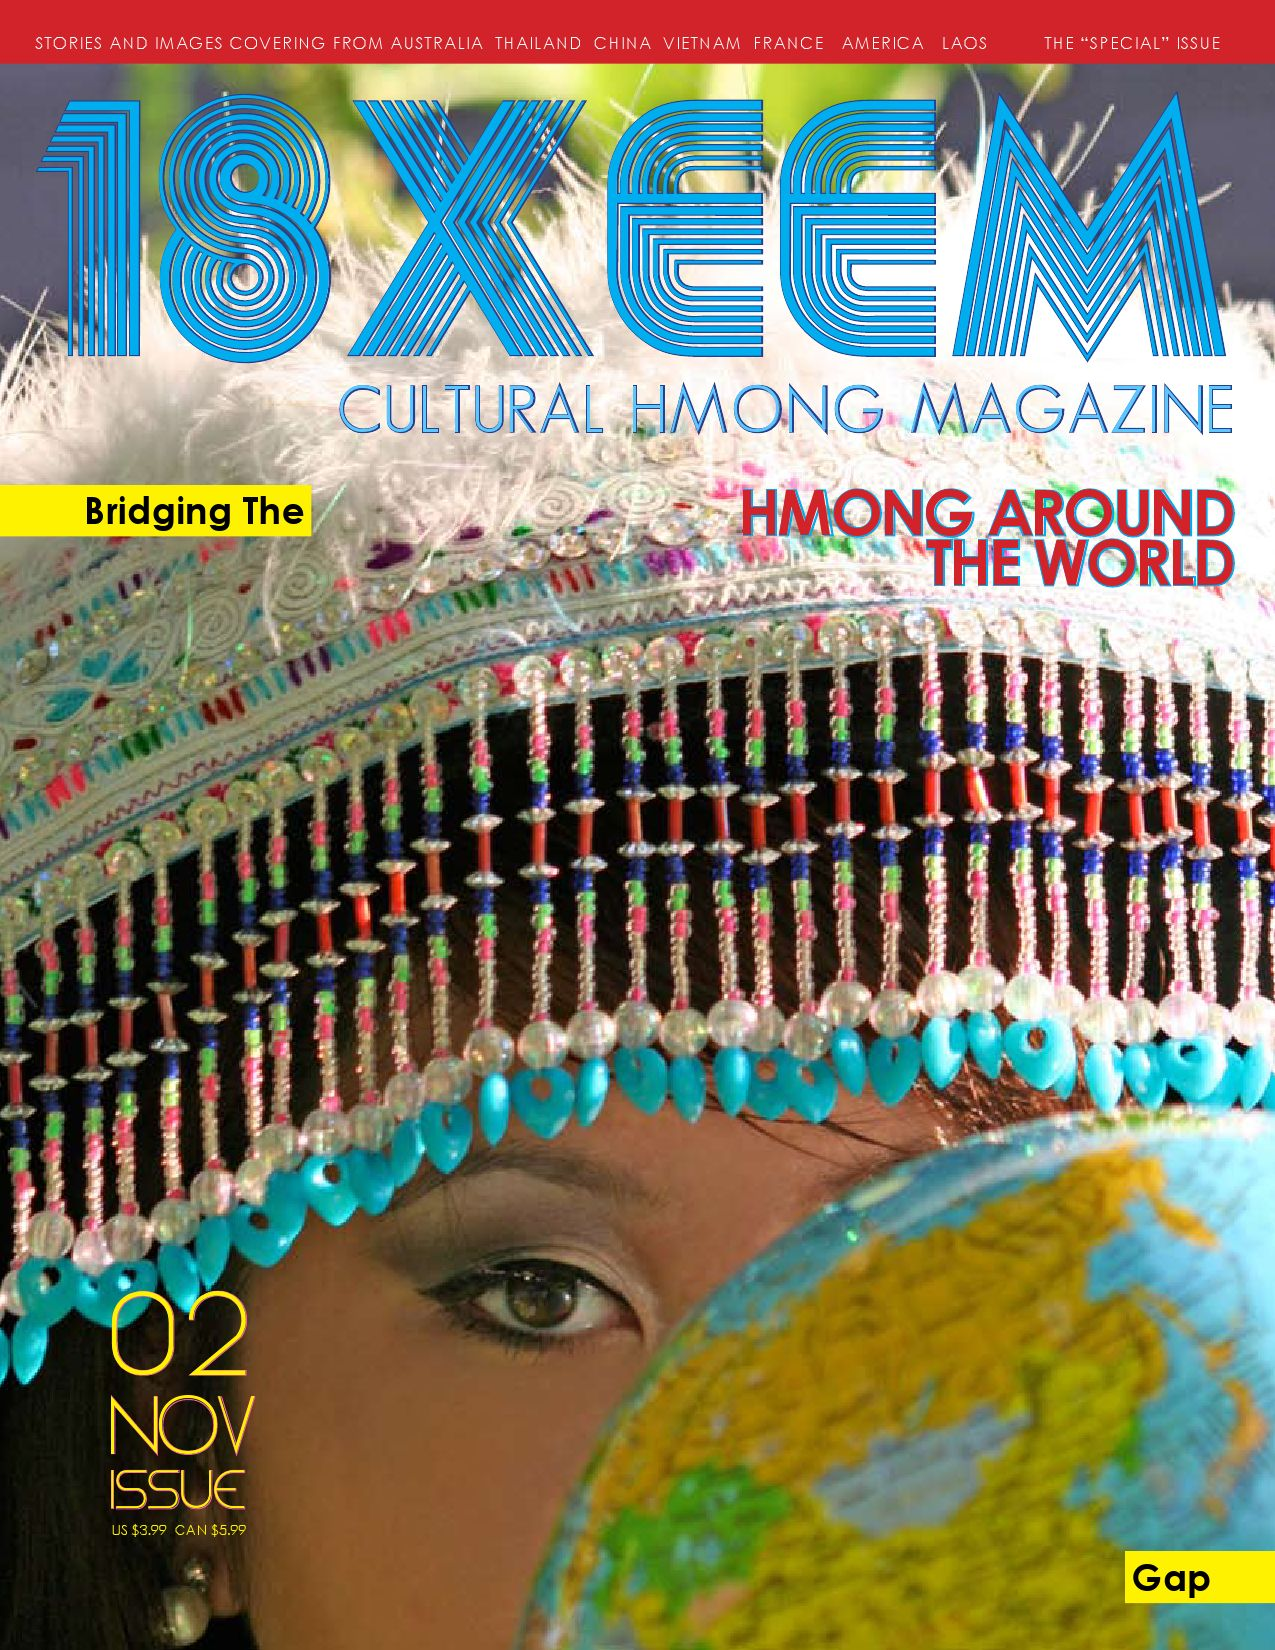 18XEEM November 2007 | Hmong Around the World by Mai Xiong